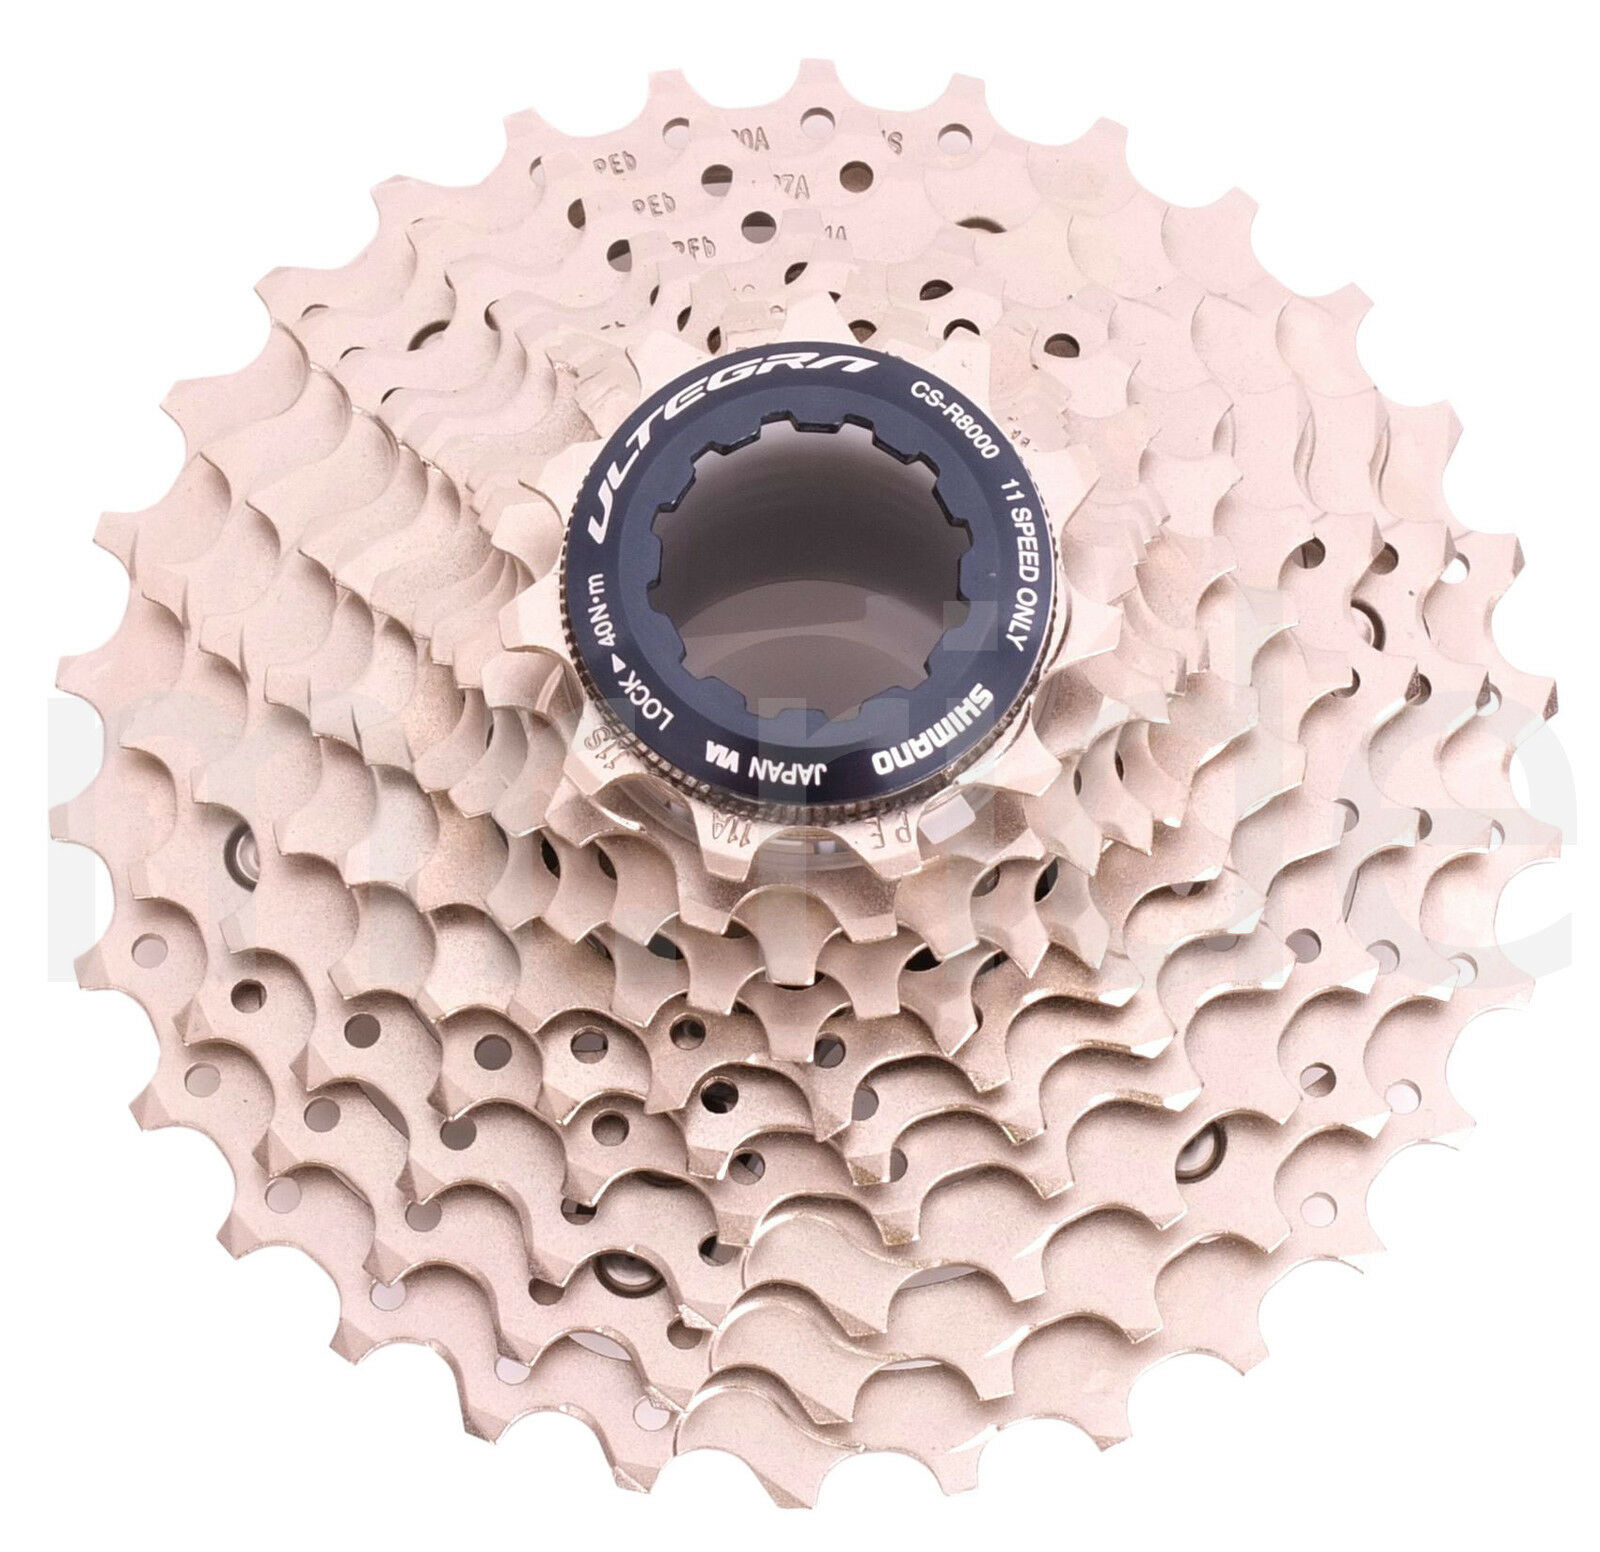 Shimano ULTEGRA CS-R8000 11 Speed Bike Cassette 11-25T 28T 30 32T Cog